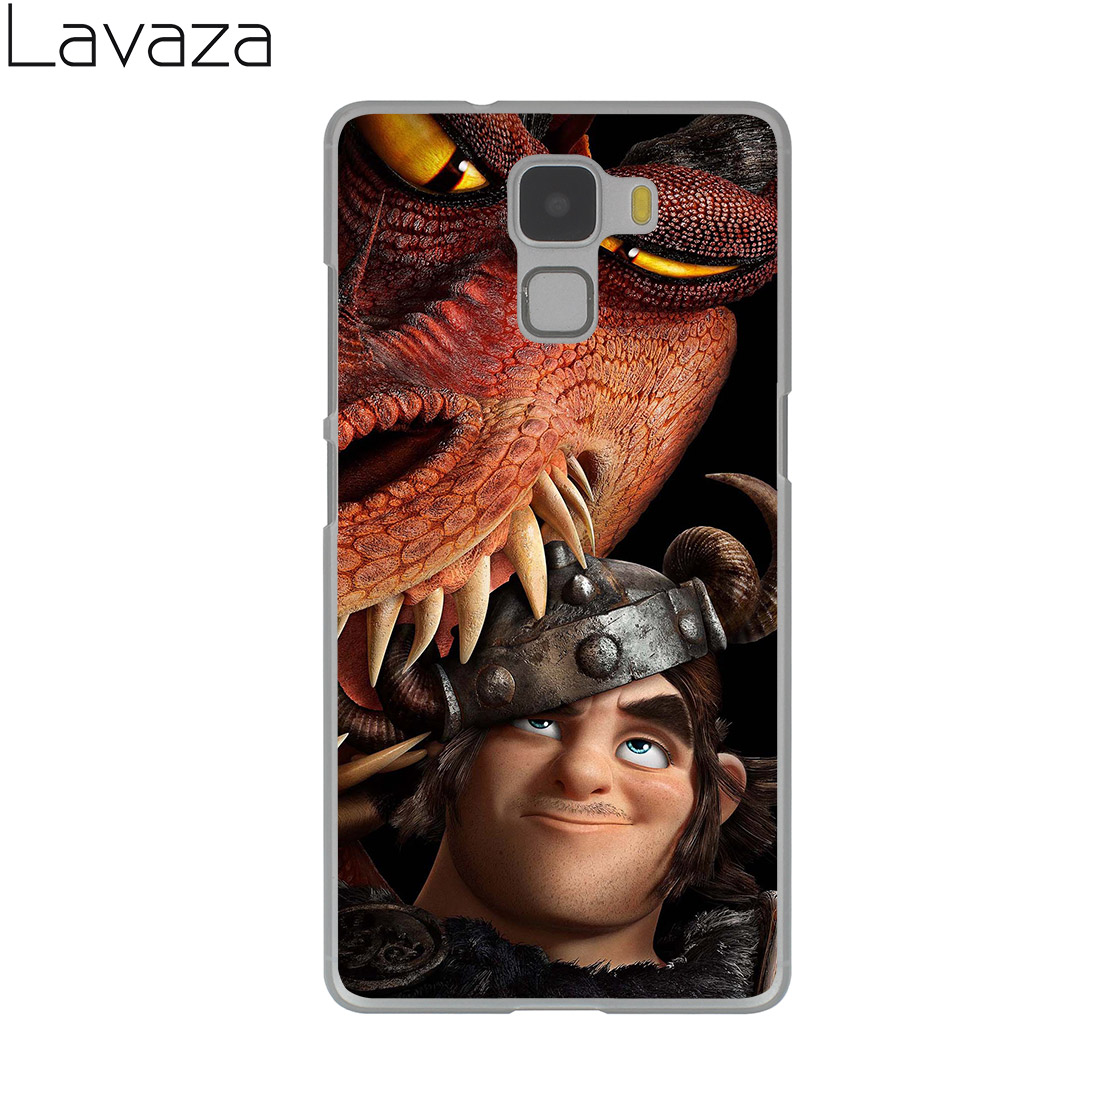 Lavaza How To Train Your Dragon Cover Case For Huawei P30 P20 Pro P9 P10 Plus P8 Lite Mini 2016 2017 P Smart Z 2019 In Half Wrapped Cases From